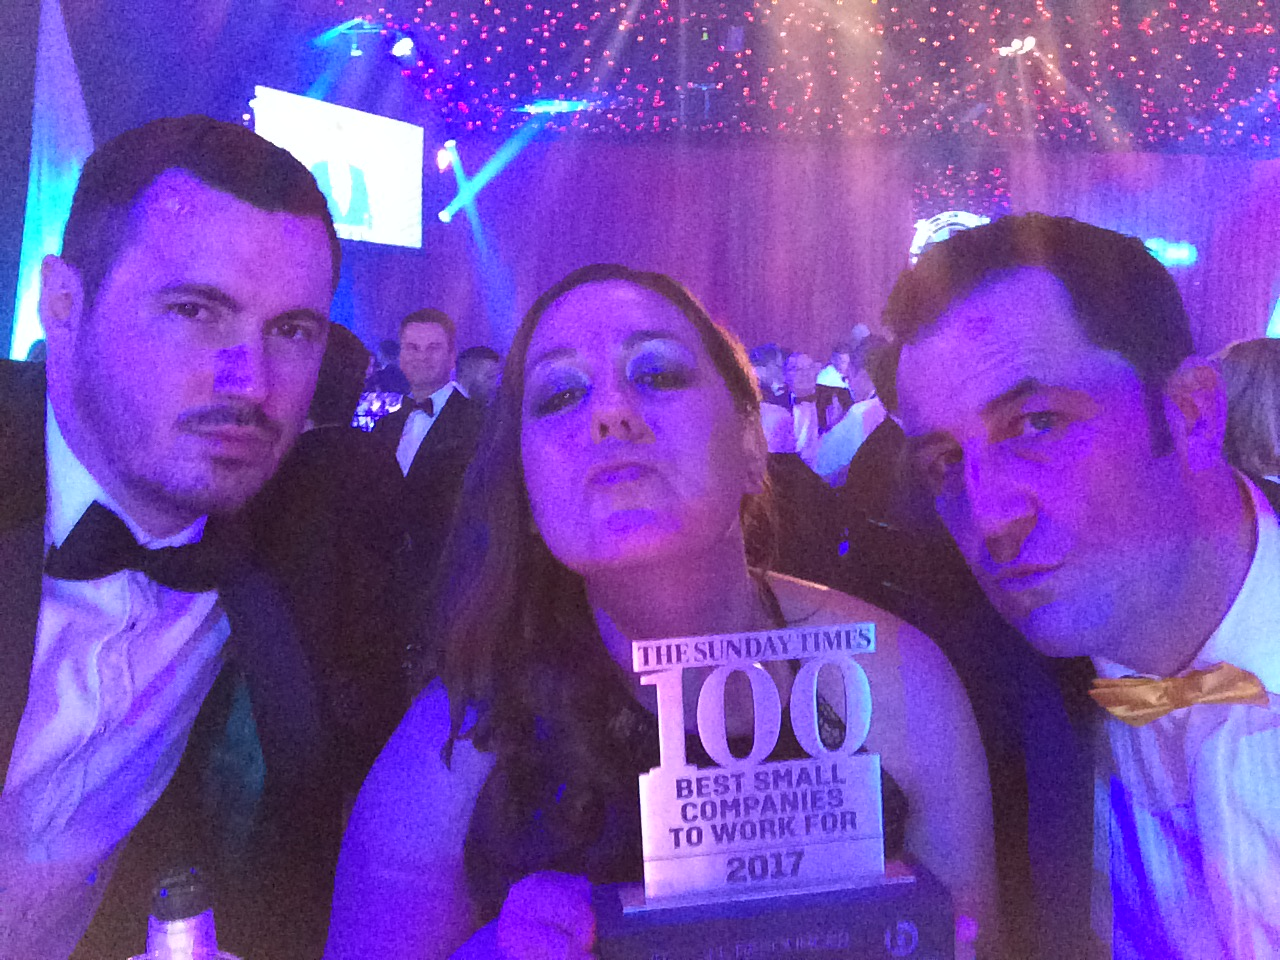 sunday times top 100 best small companies